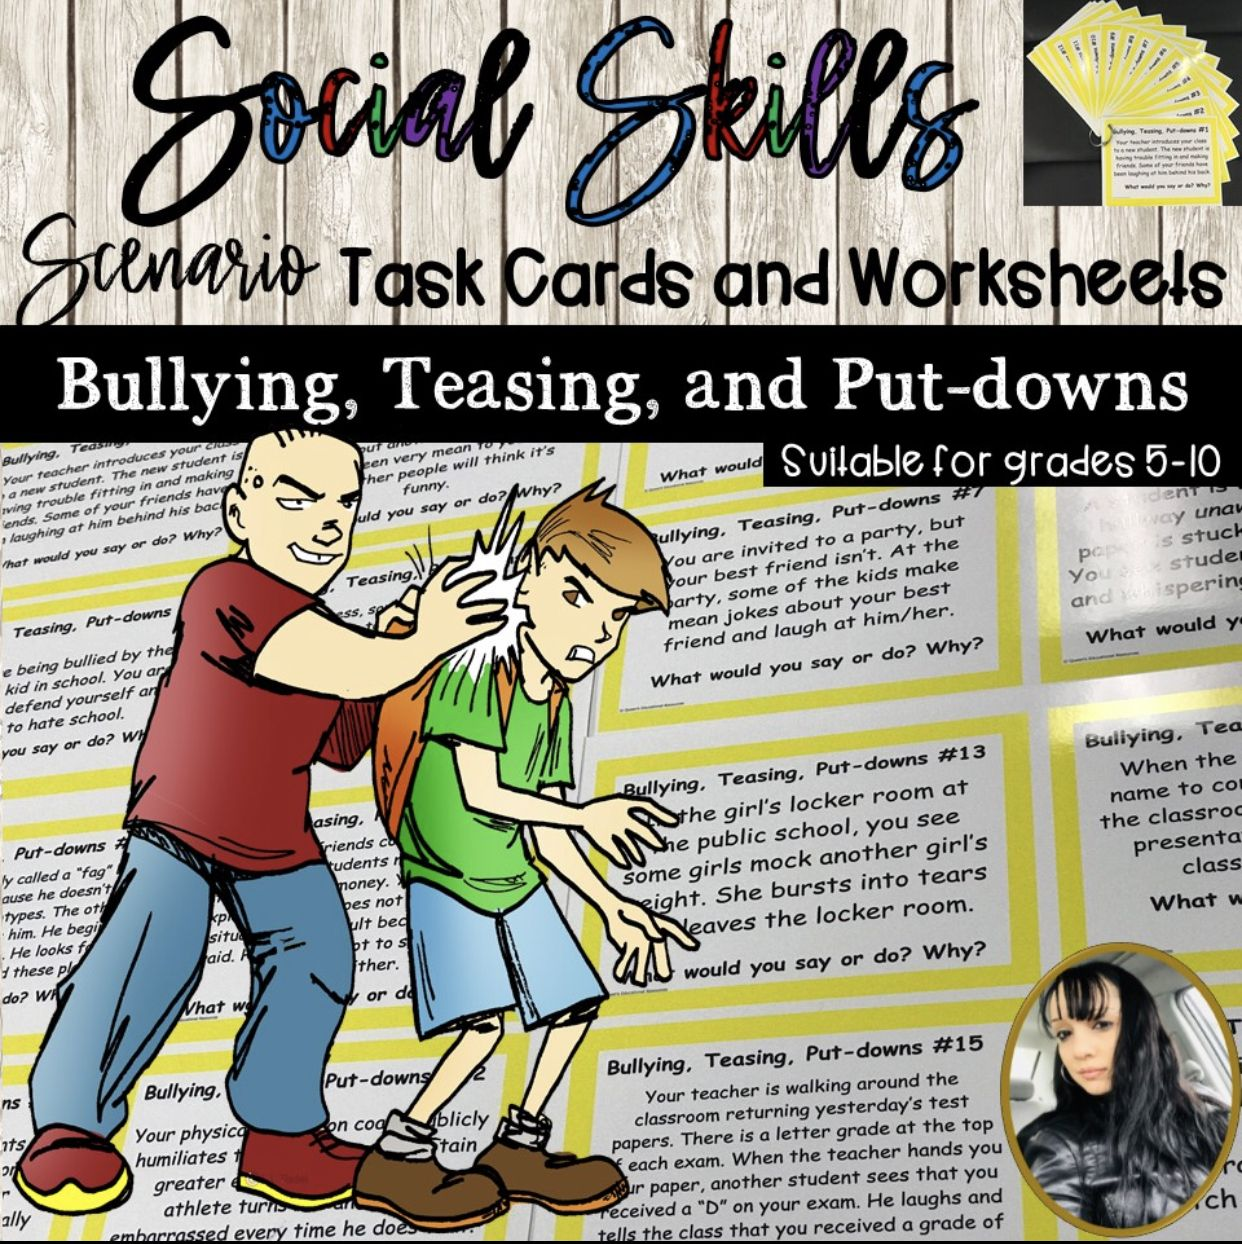 Bullying Scenario Task Cards And Worksheets